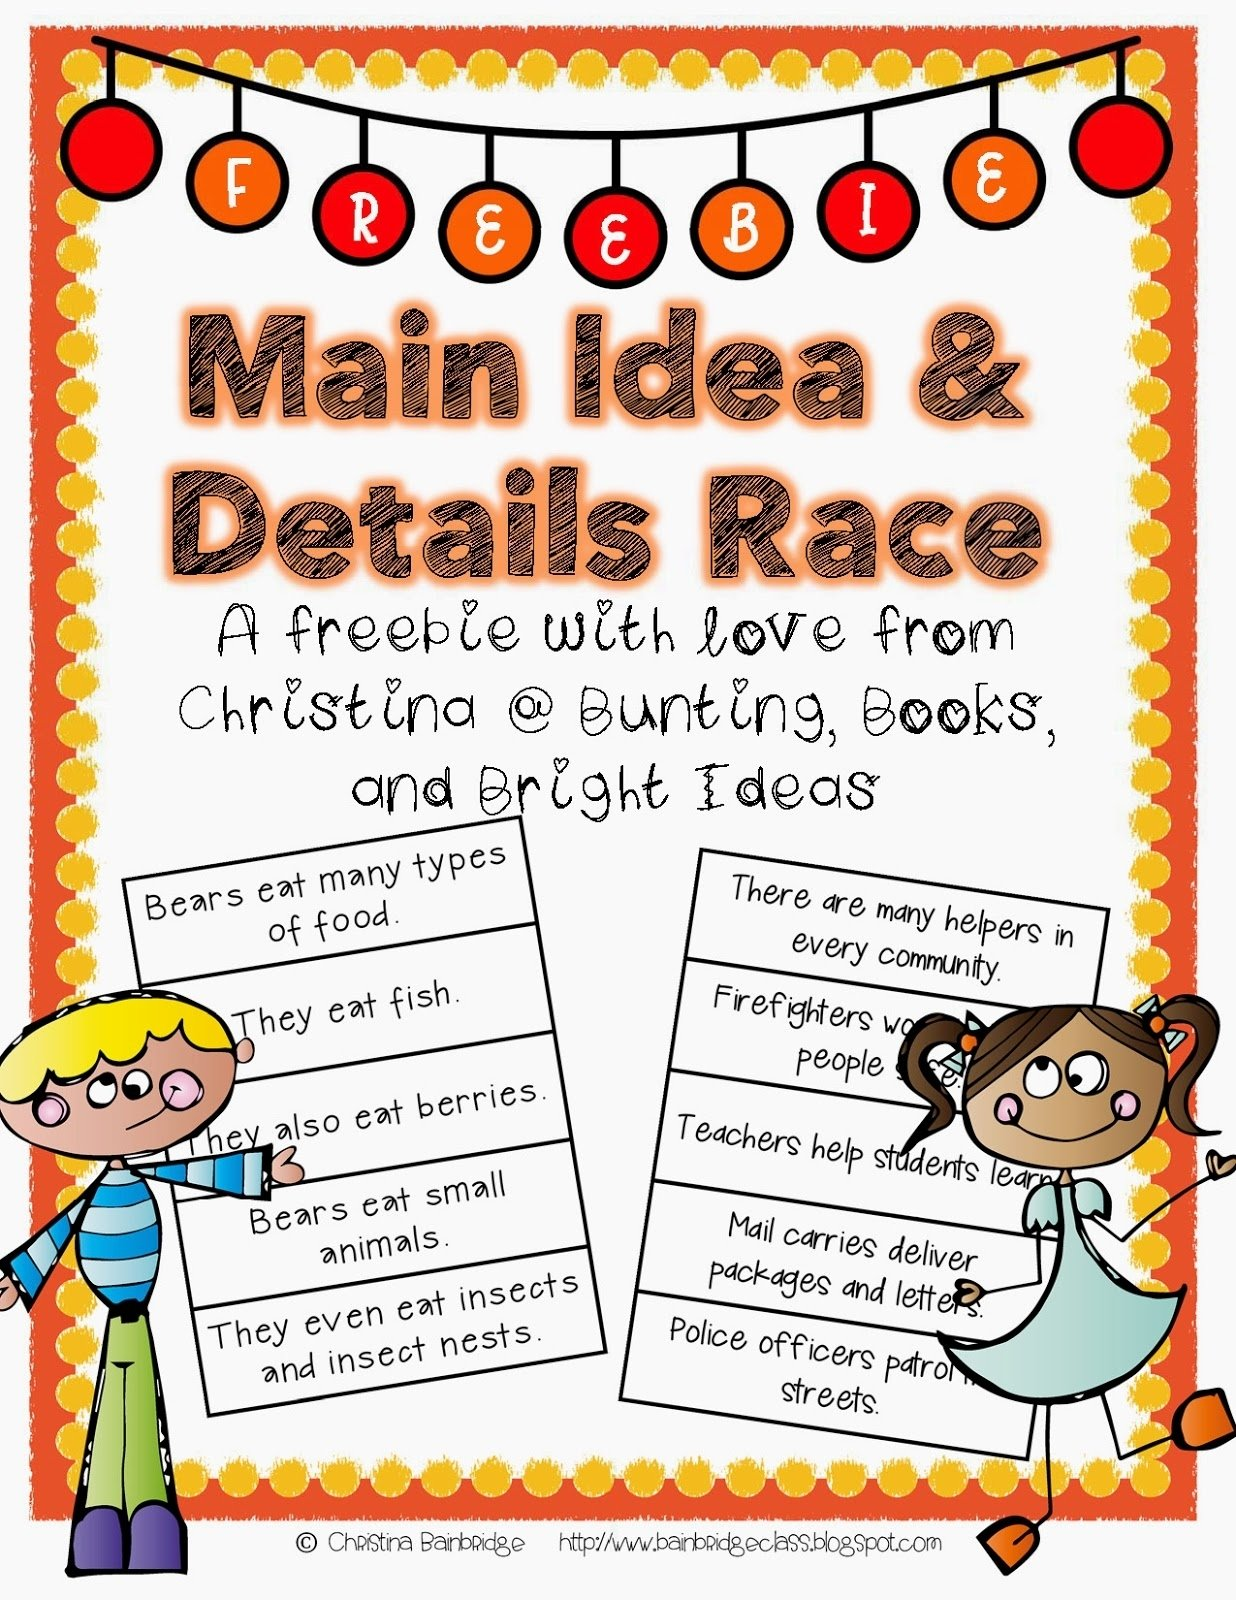 bunting, books, and bright ideas*: main idea and details *freebie*!